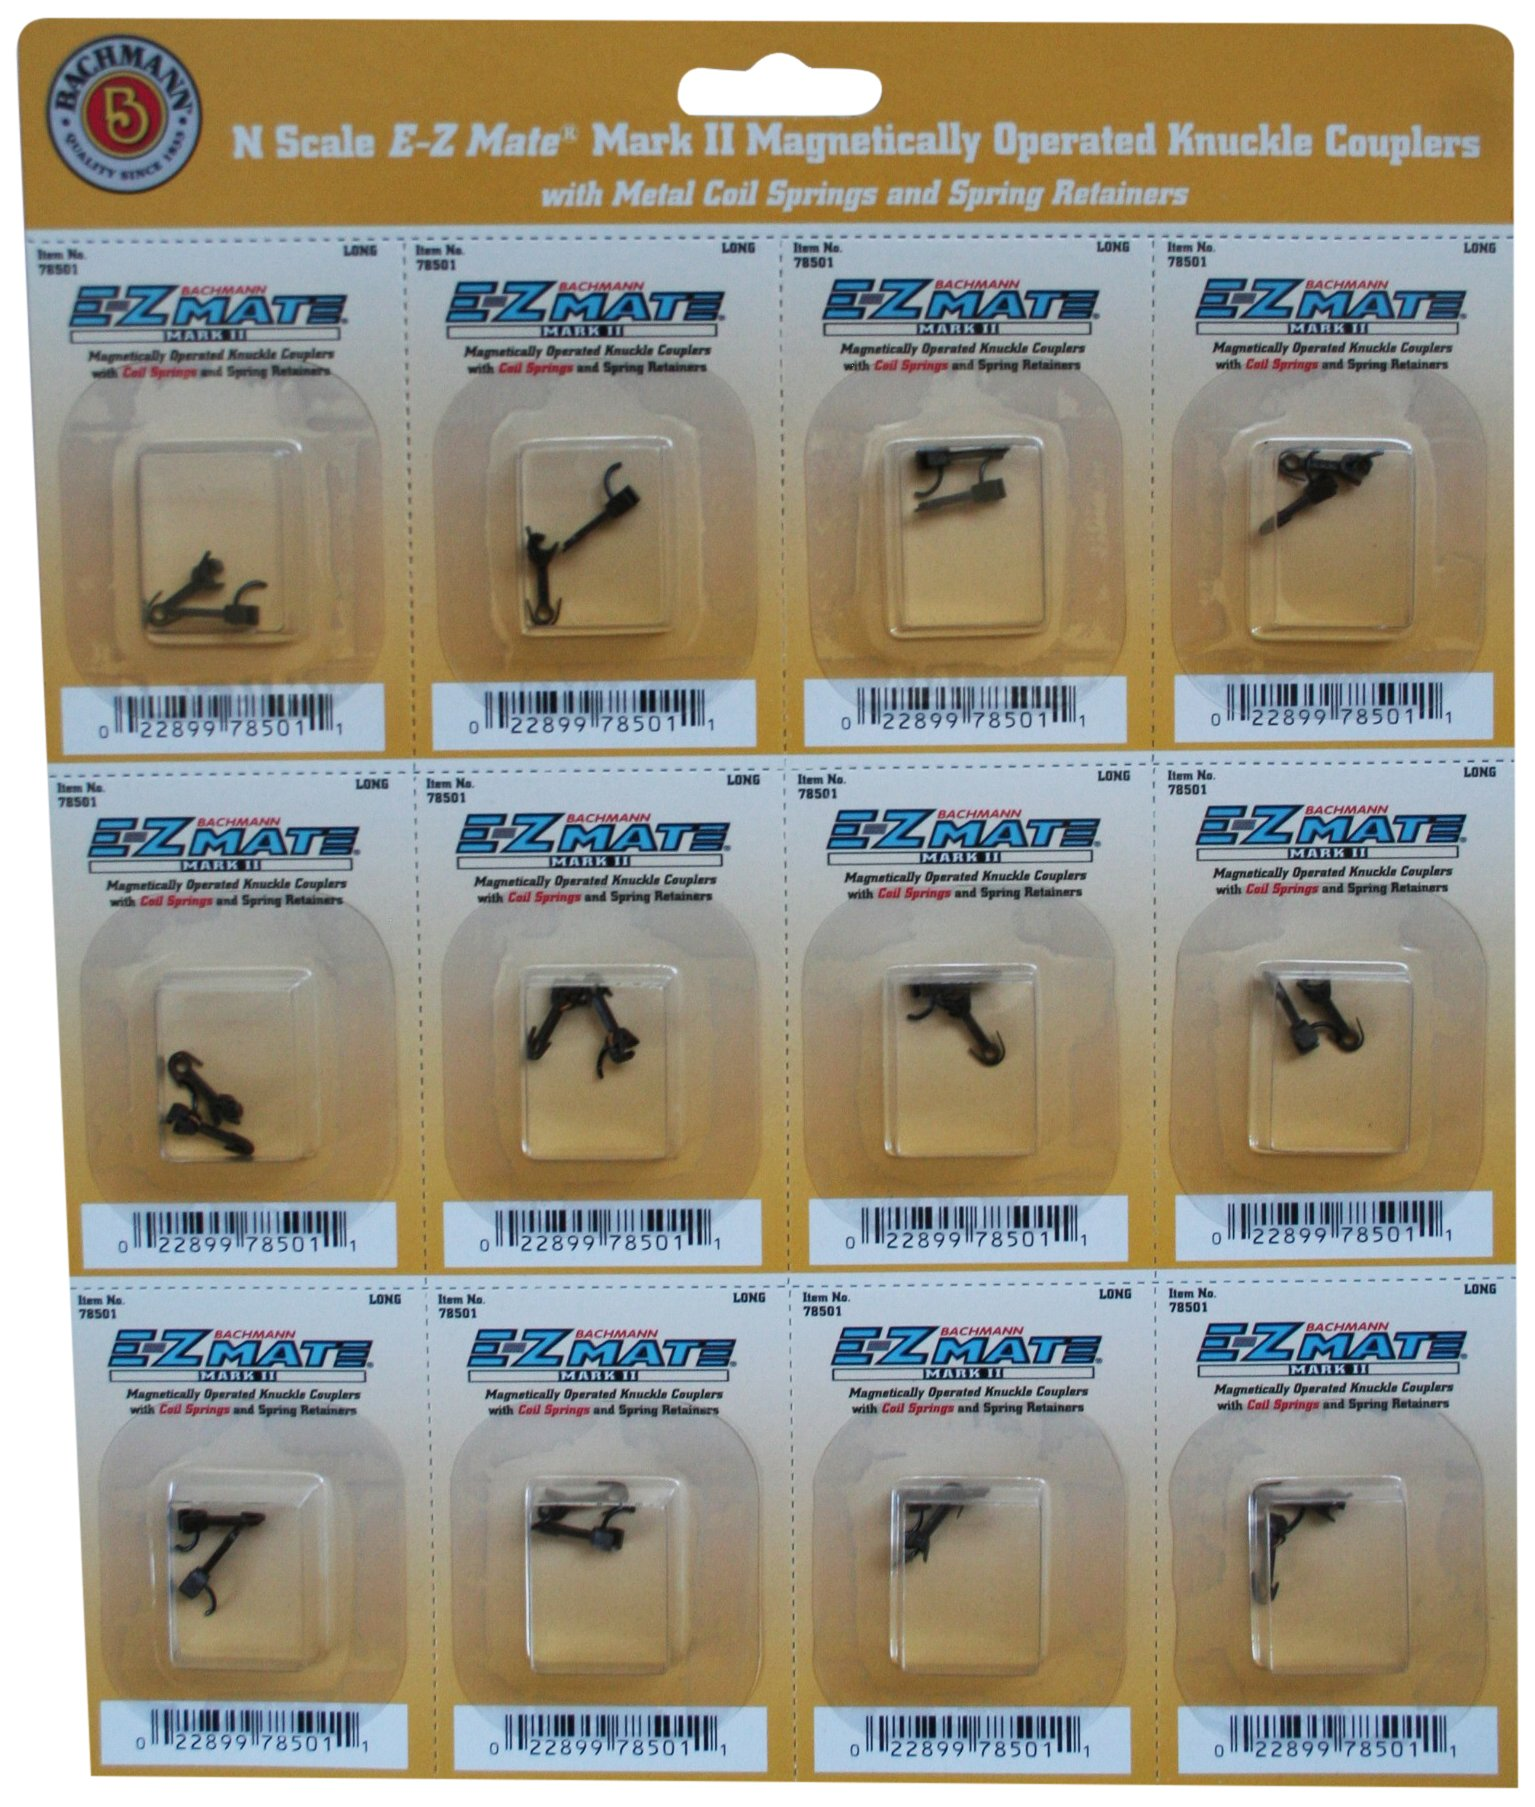 Bachmann Trains E - Z Mate Mark II Magnetic Knuckle Couplers with Metal Coil Spring - Short (12 Coupler pairs per card) - N Scale